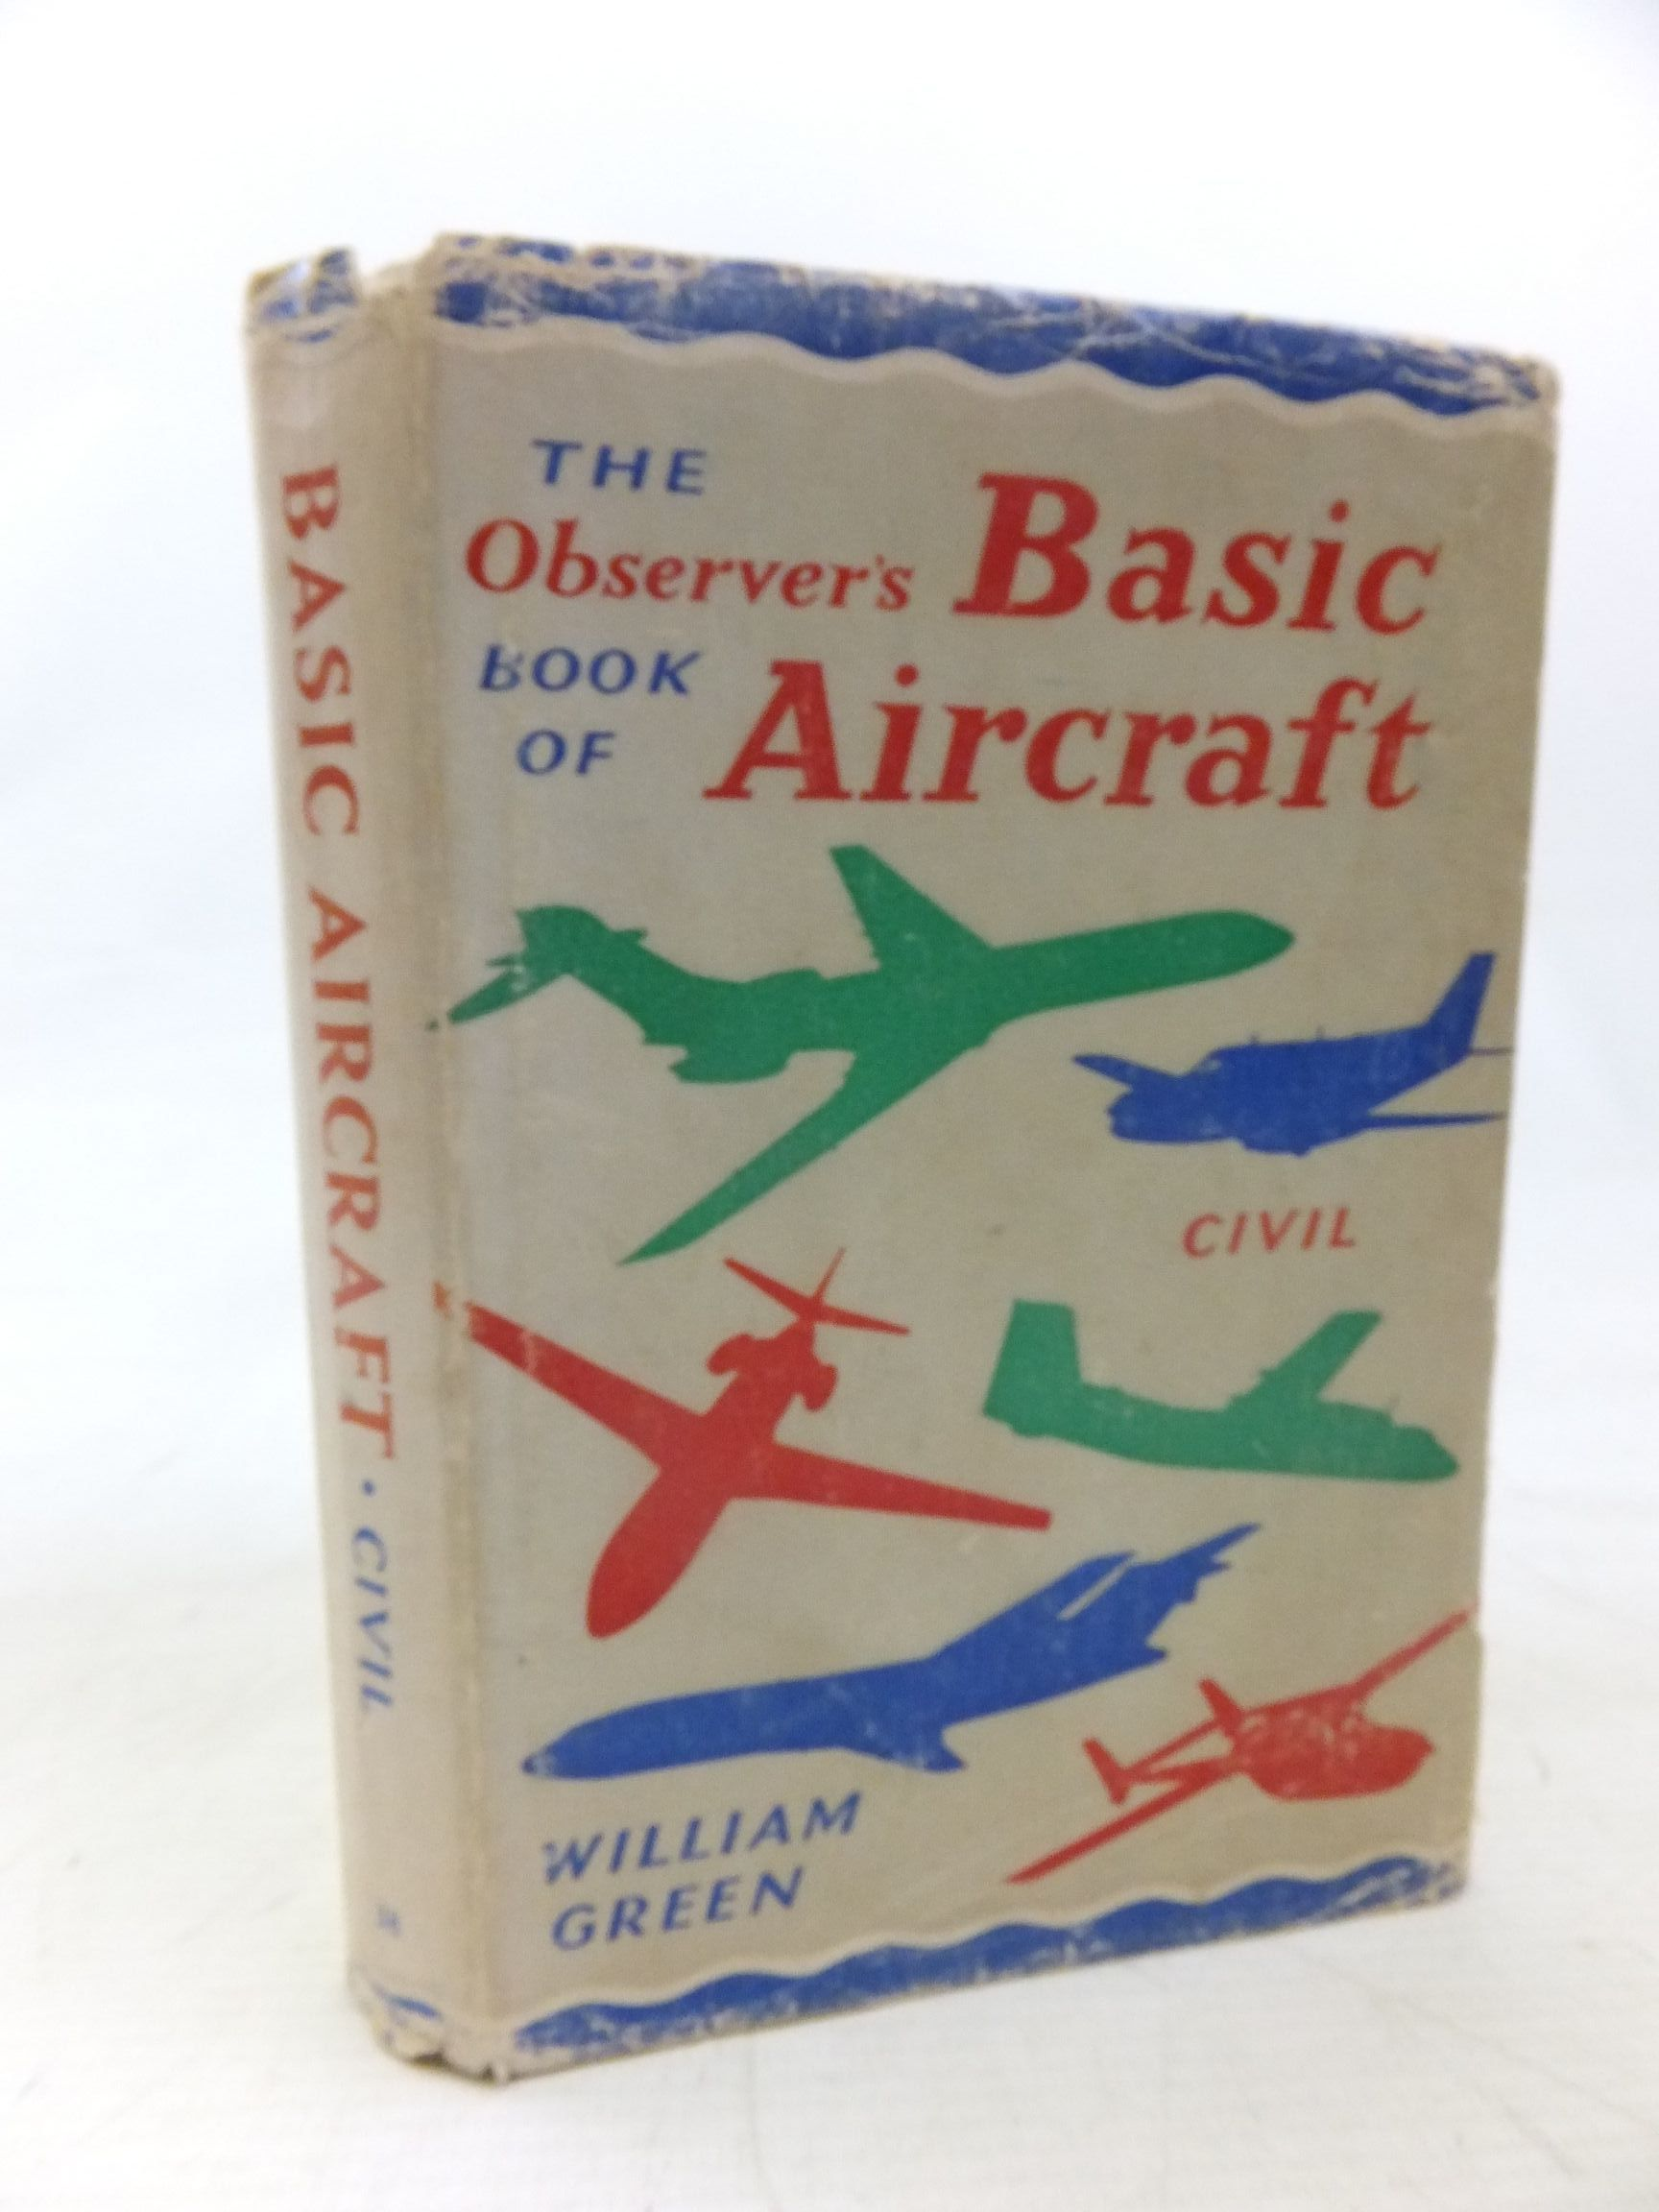 Photo of THE OBSERVER'S BOOK OF BASIC AIRCRAFT: CIVIL written by Green, William illustrated by Punnett, Dennis published by Frederick Warne & Co Ltd. (STOCK CODE: 1713492)  for sale by Stella & Rose's Books